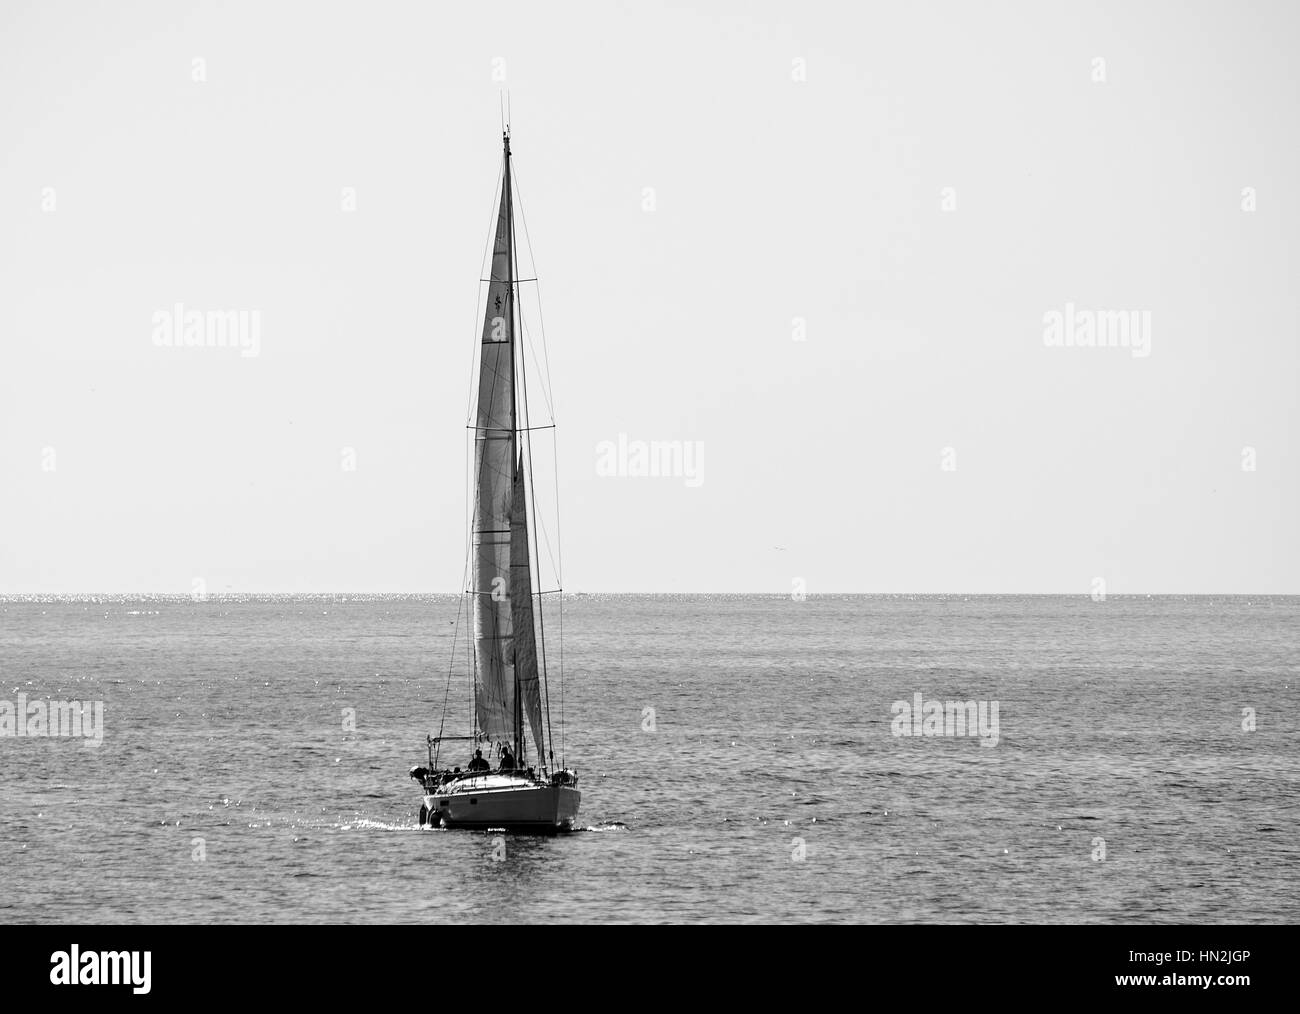 Sail Boat of Redondo Beach Pier in Black and White - Stock Image